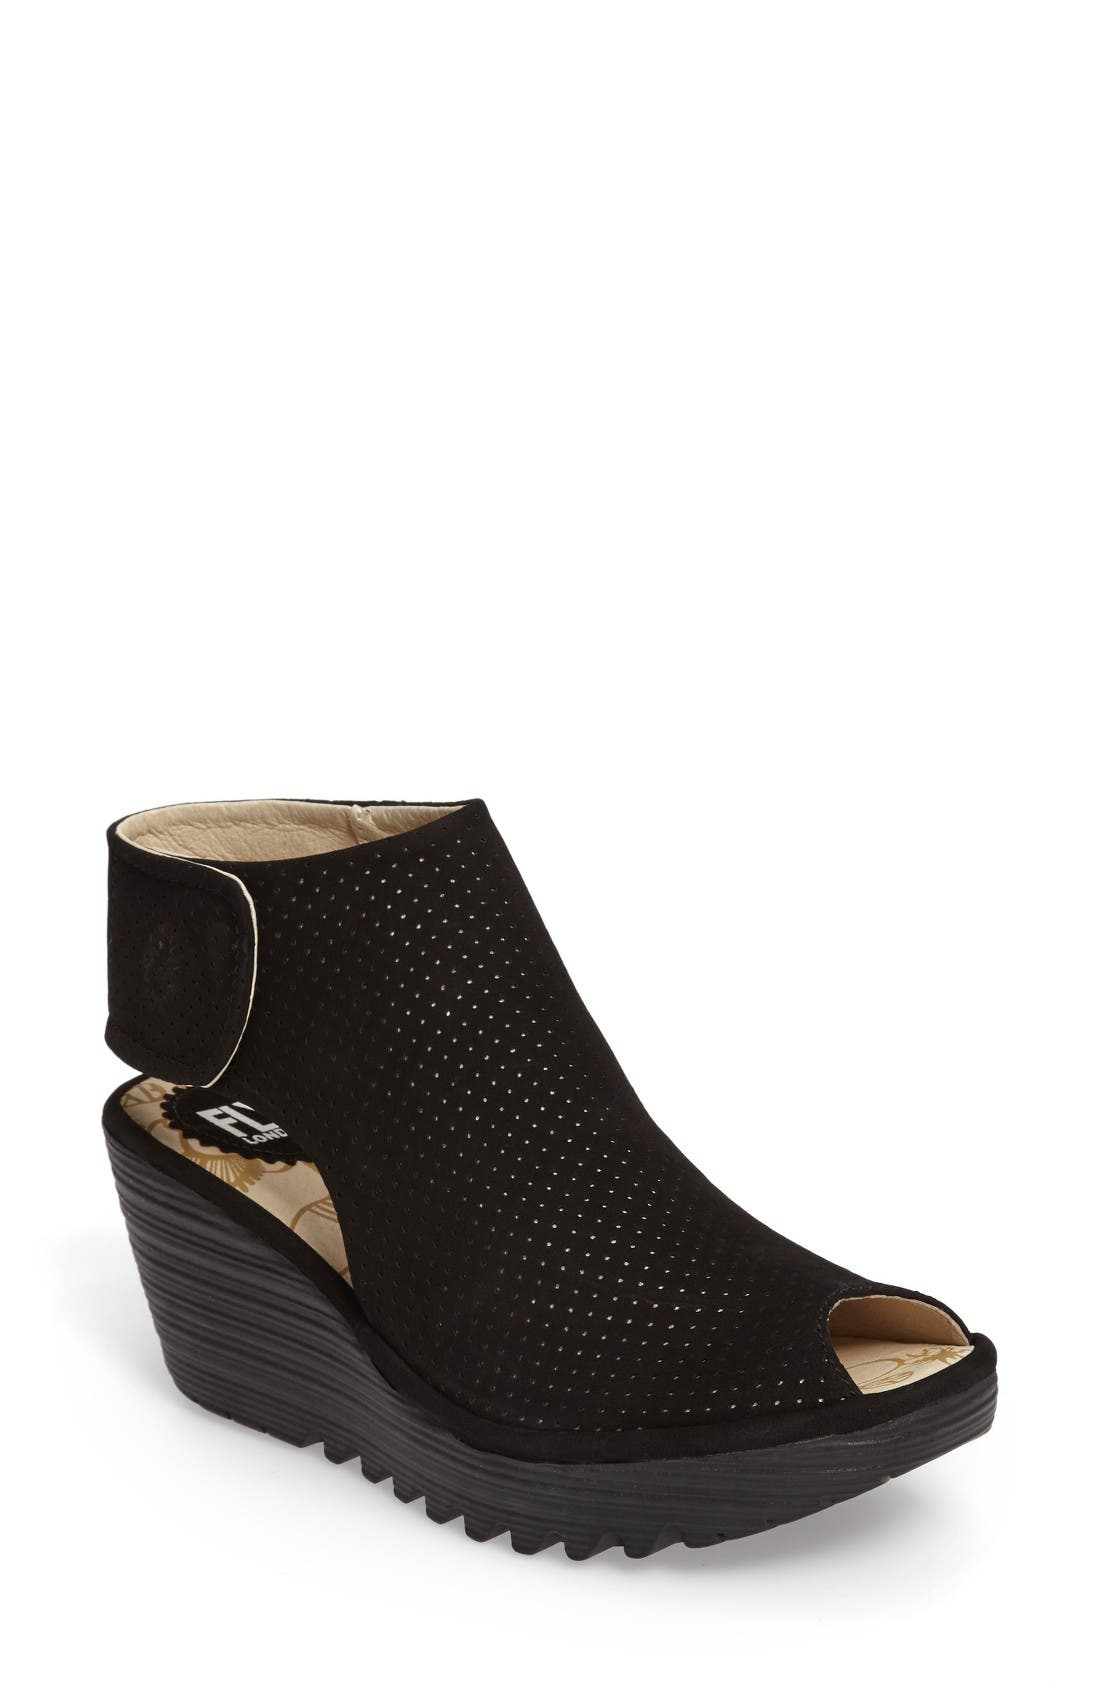 Fly London Yahl Open Toe Platform Wedge (Women)